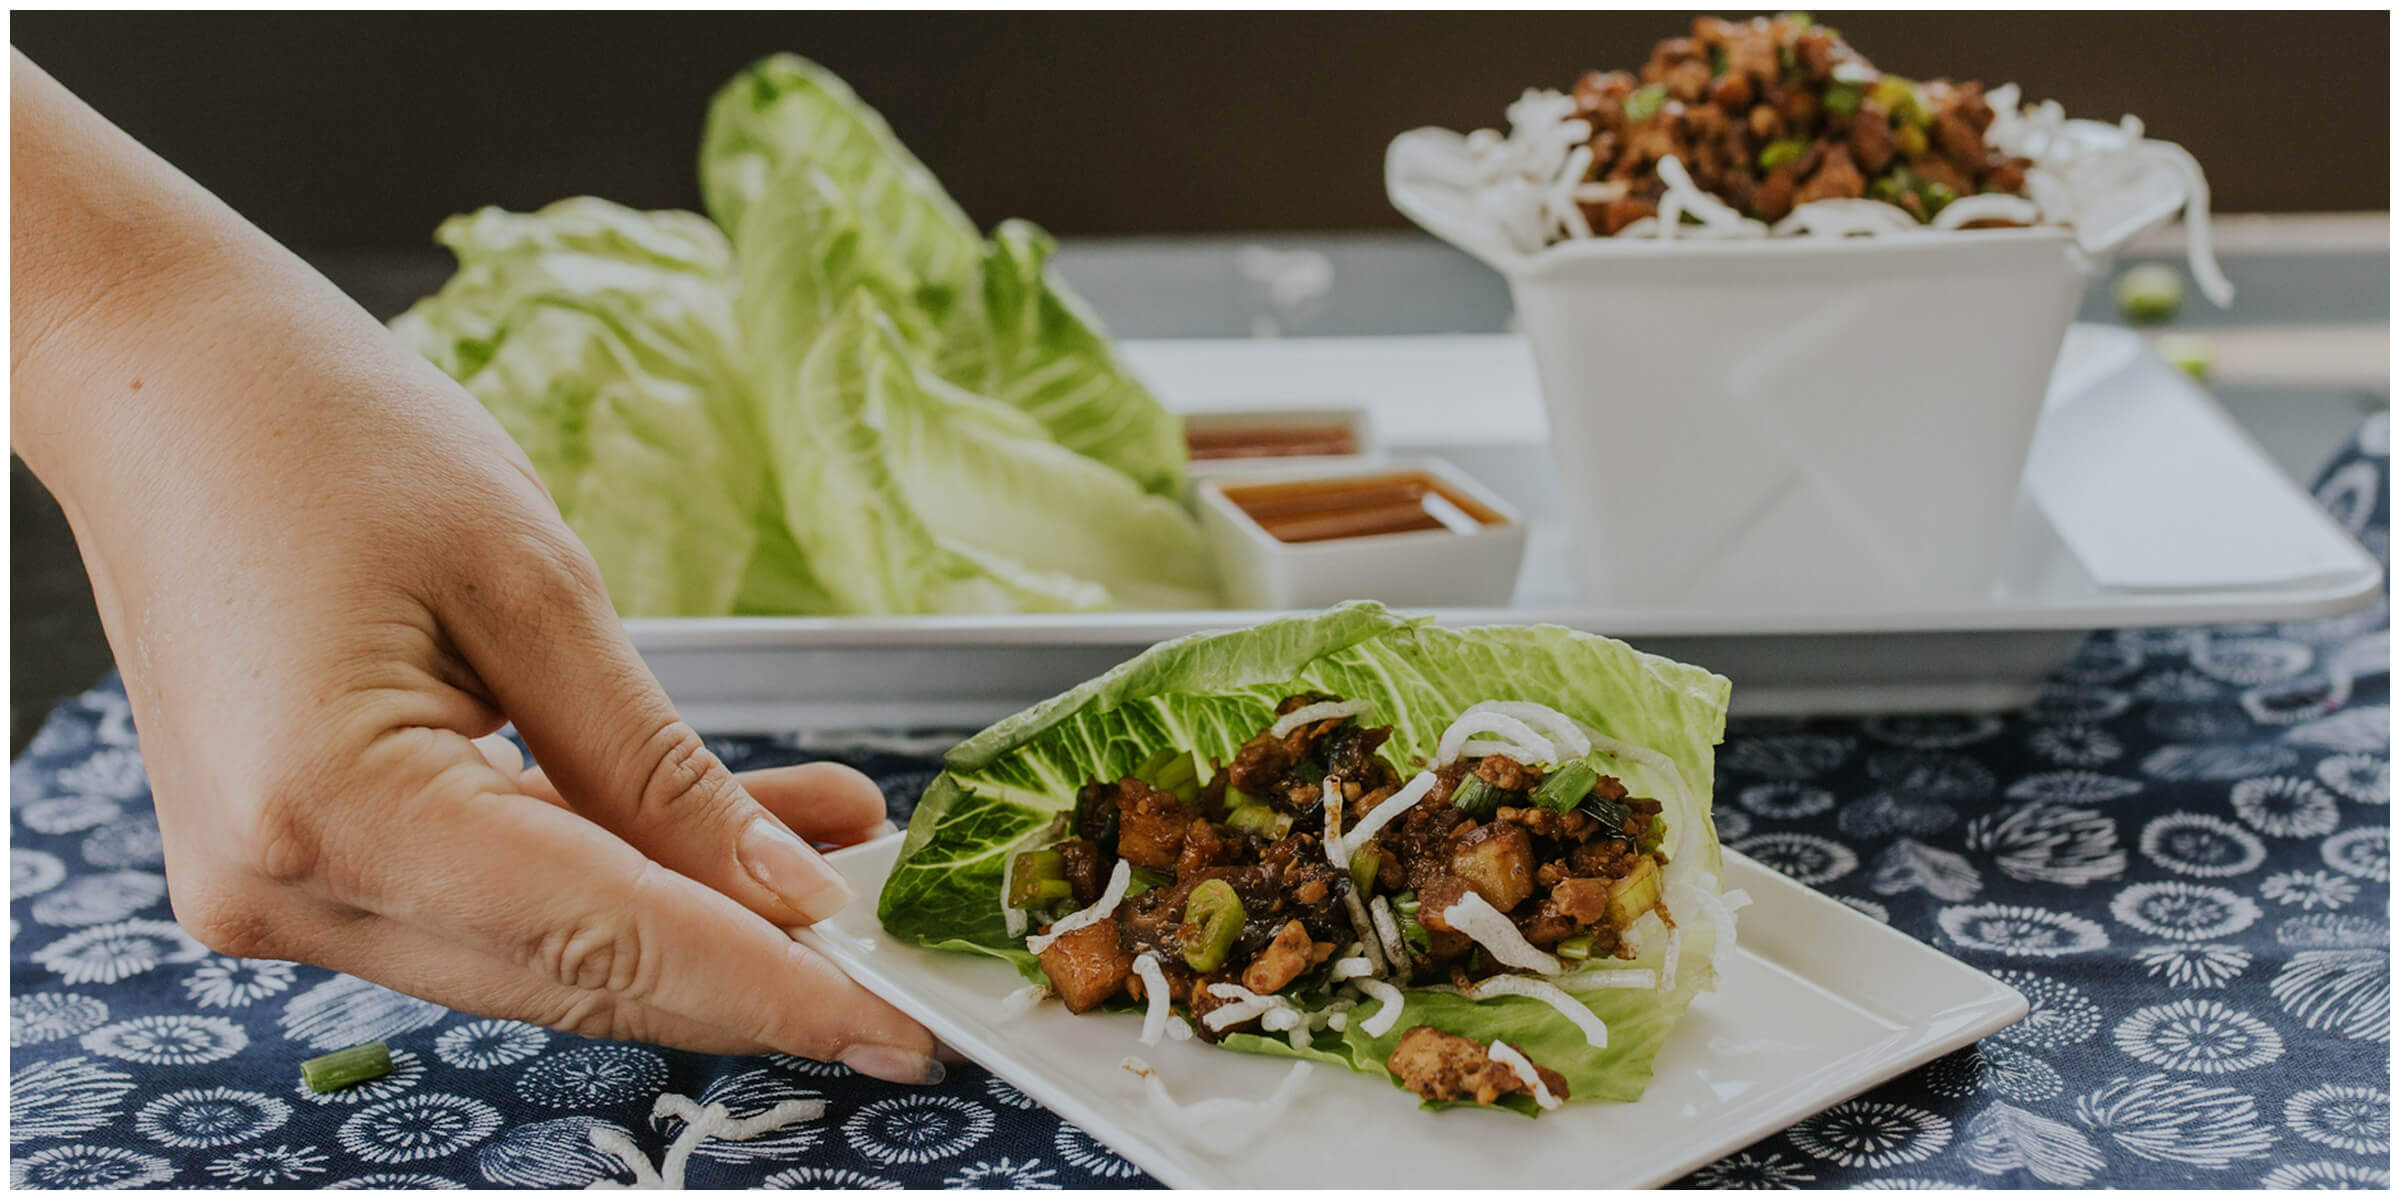 Chang's Lettuce Wraps